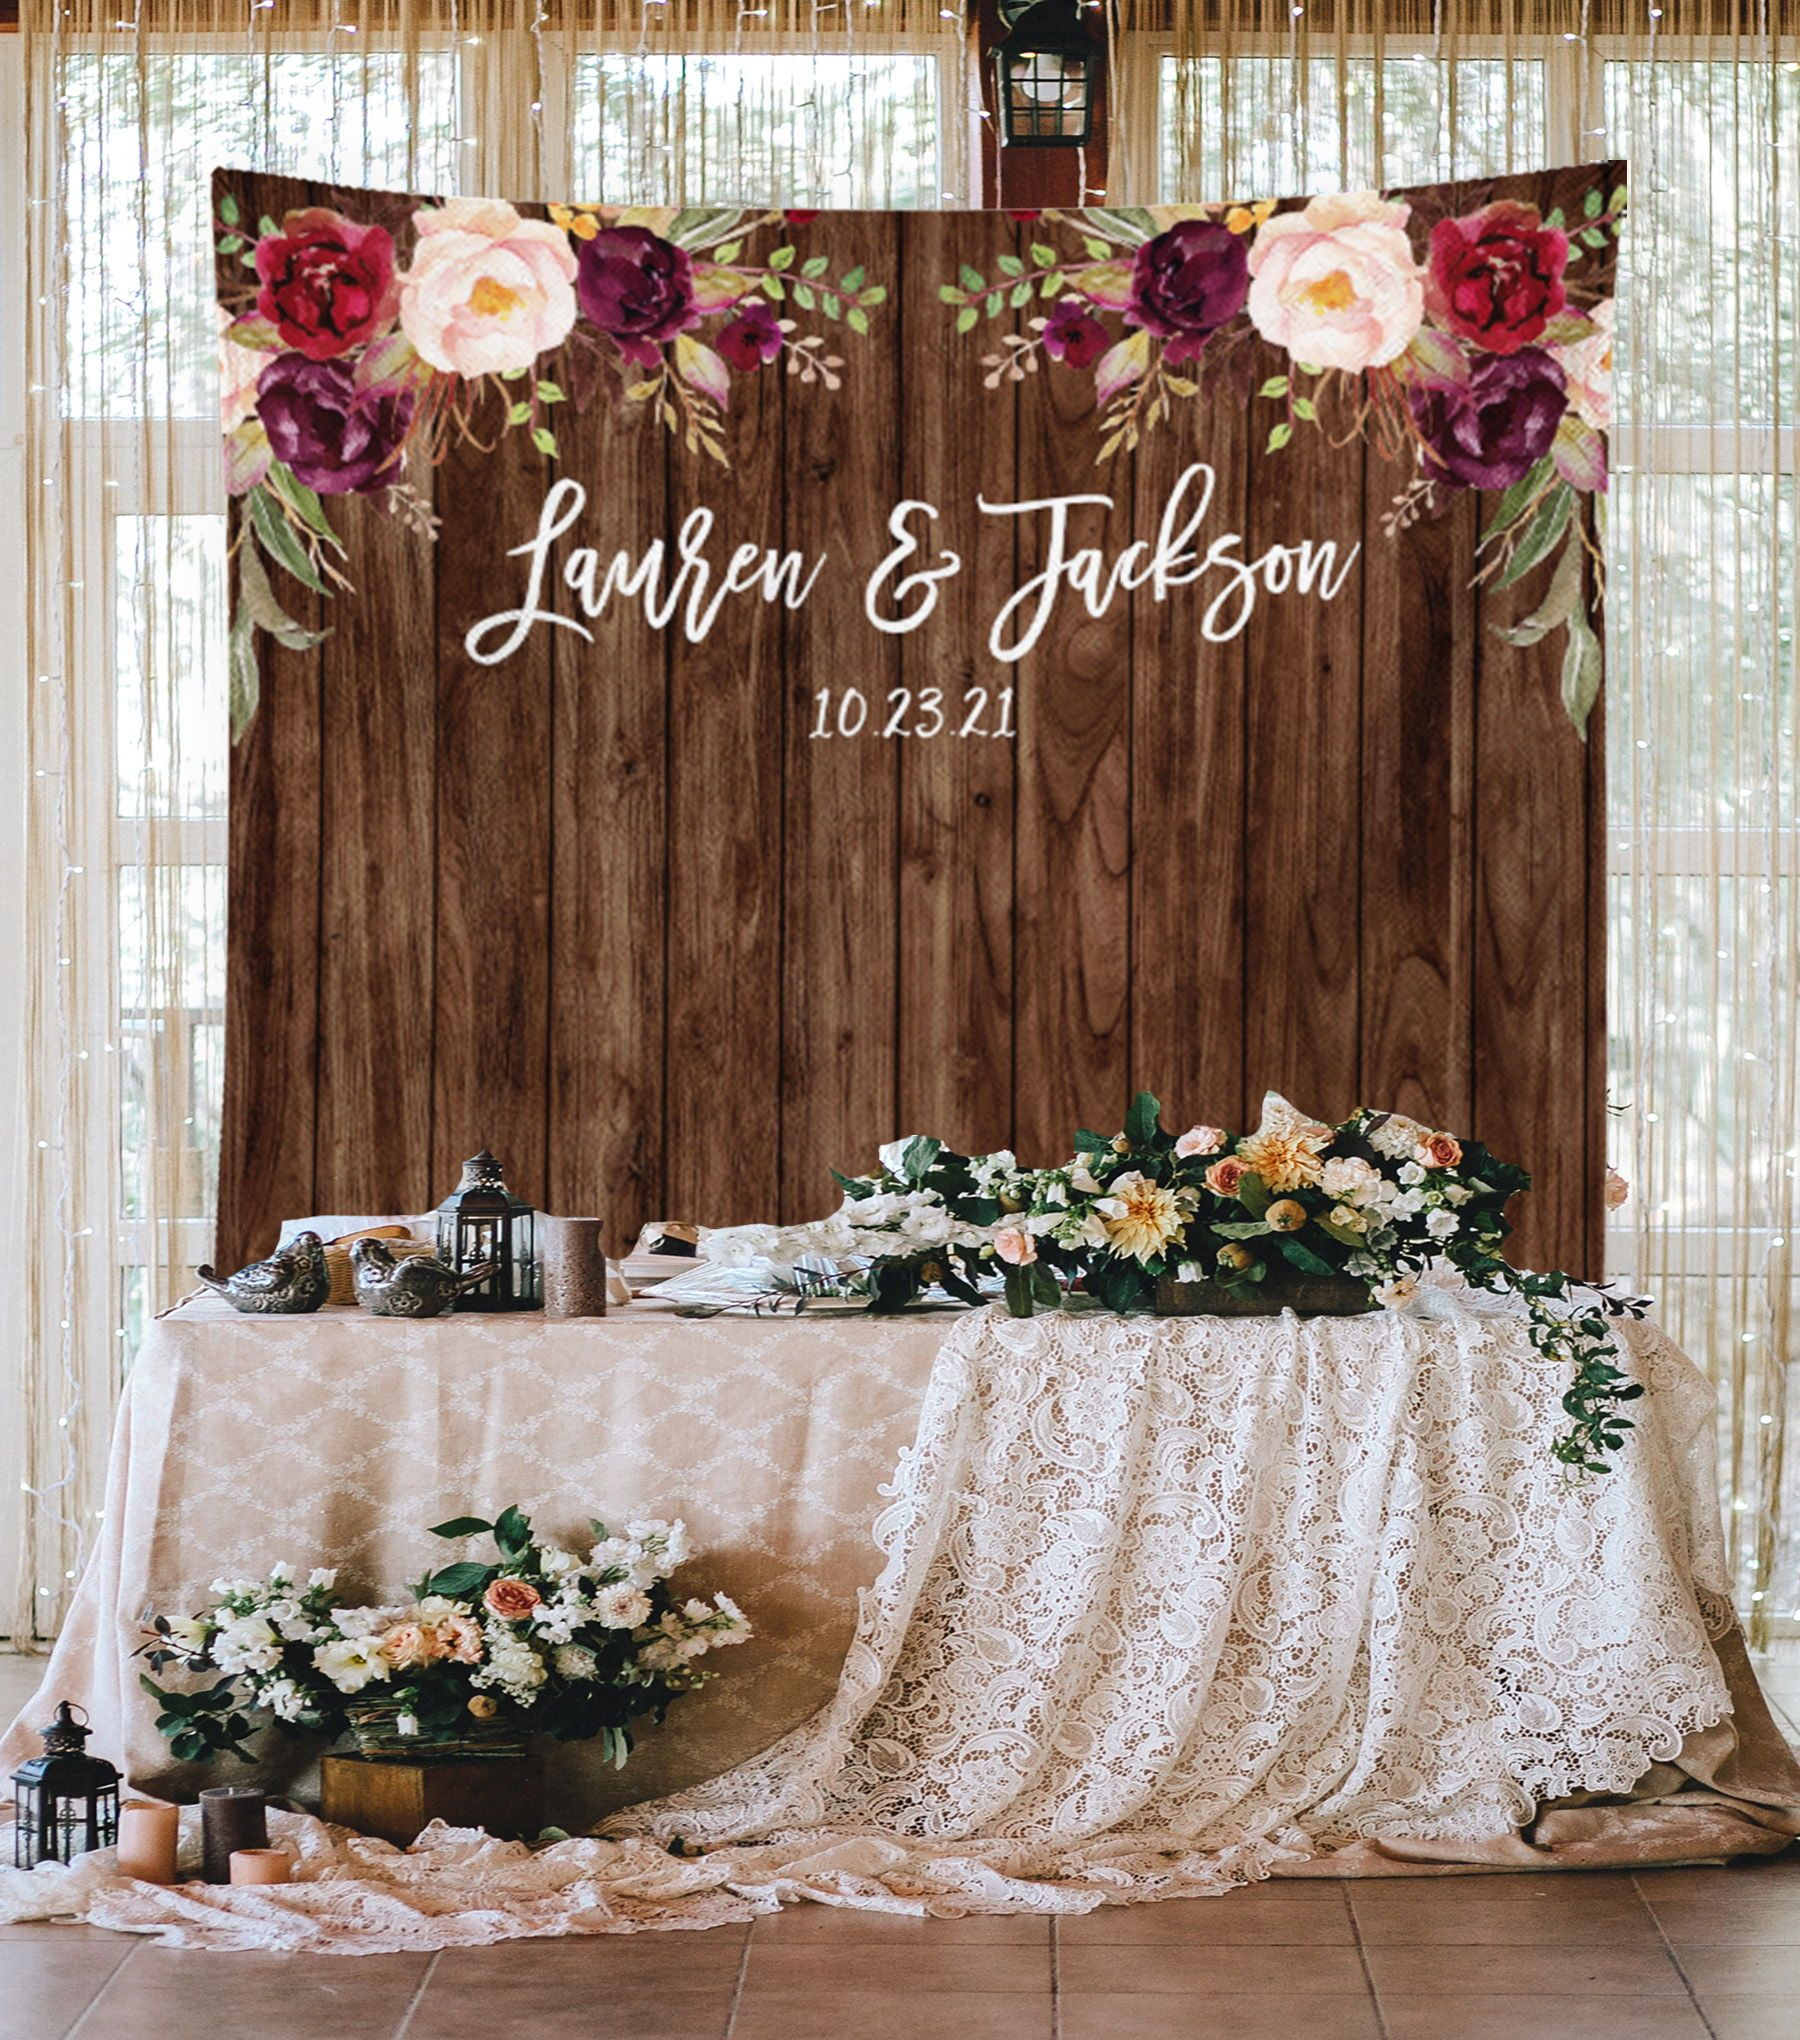 Wedding Reception Activities Ideas: Wedding Backdrop Name, Wedding Reception Decorations Boho